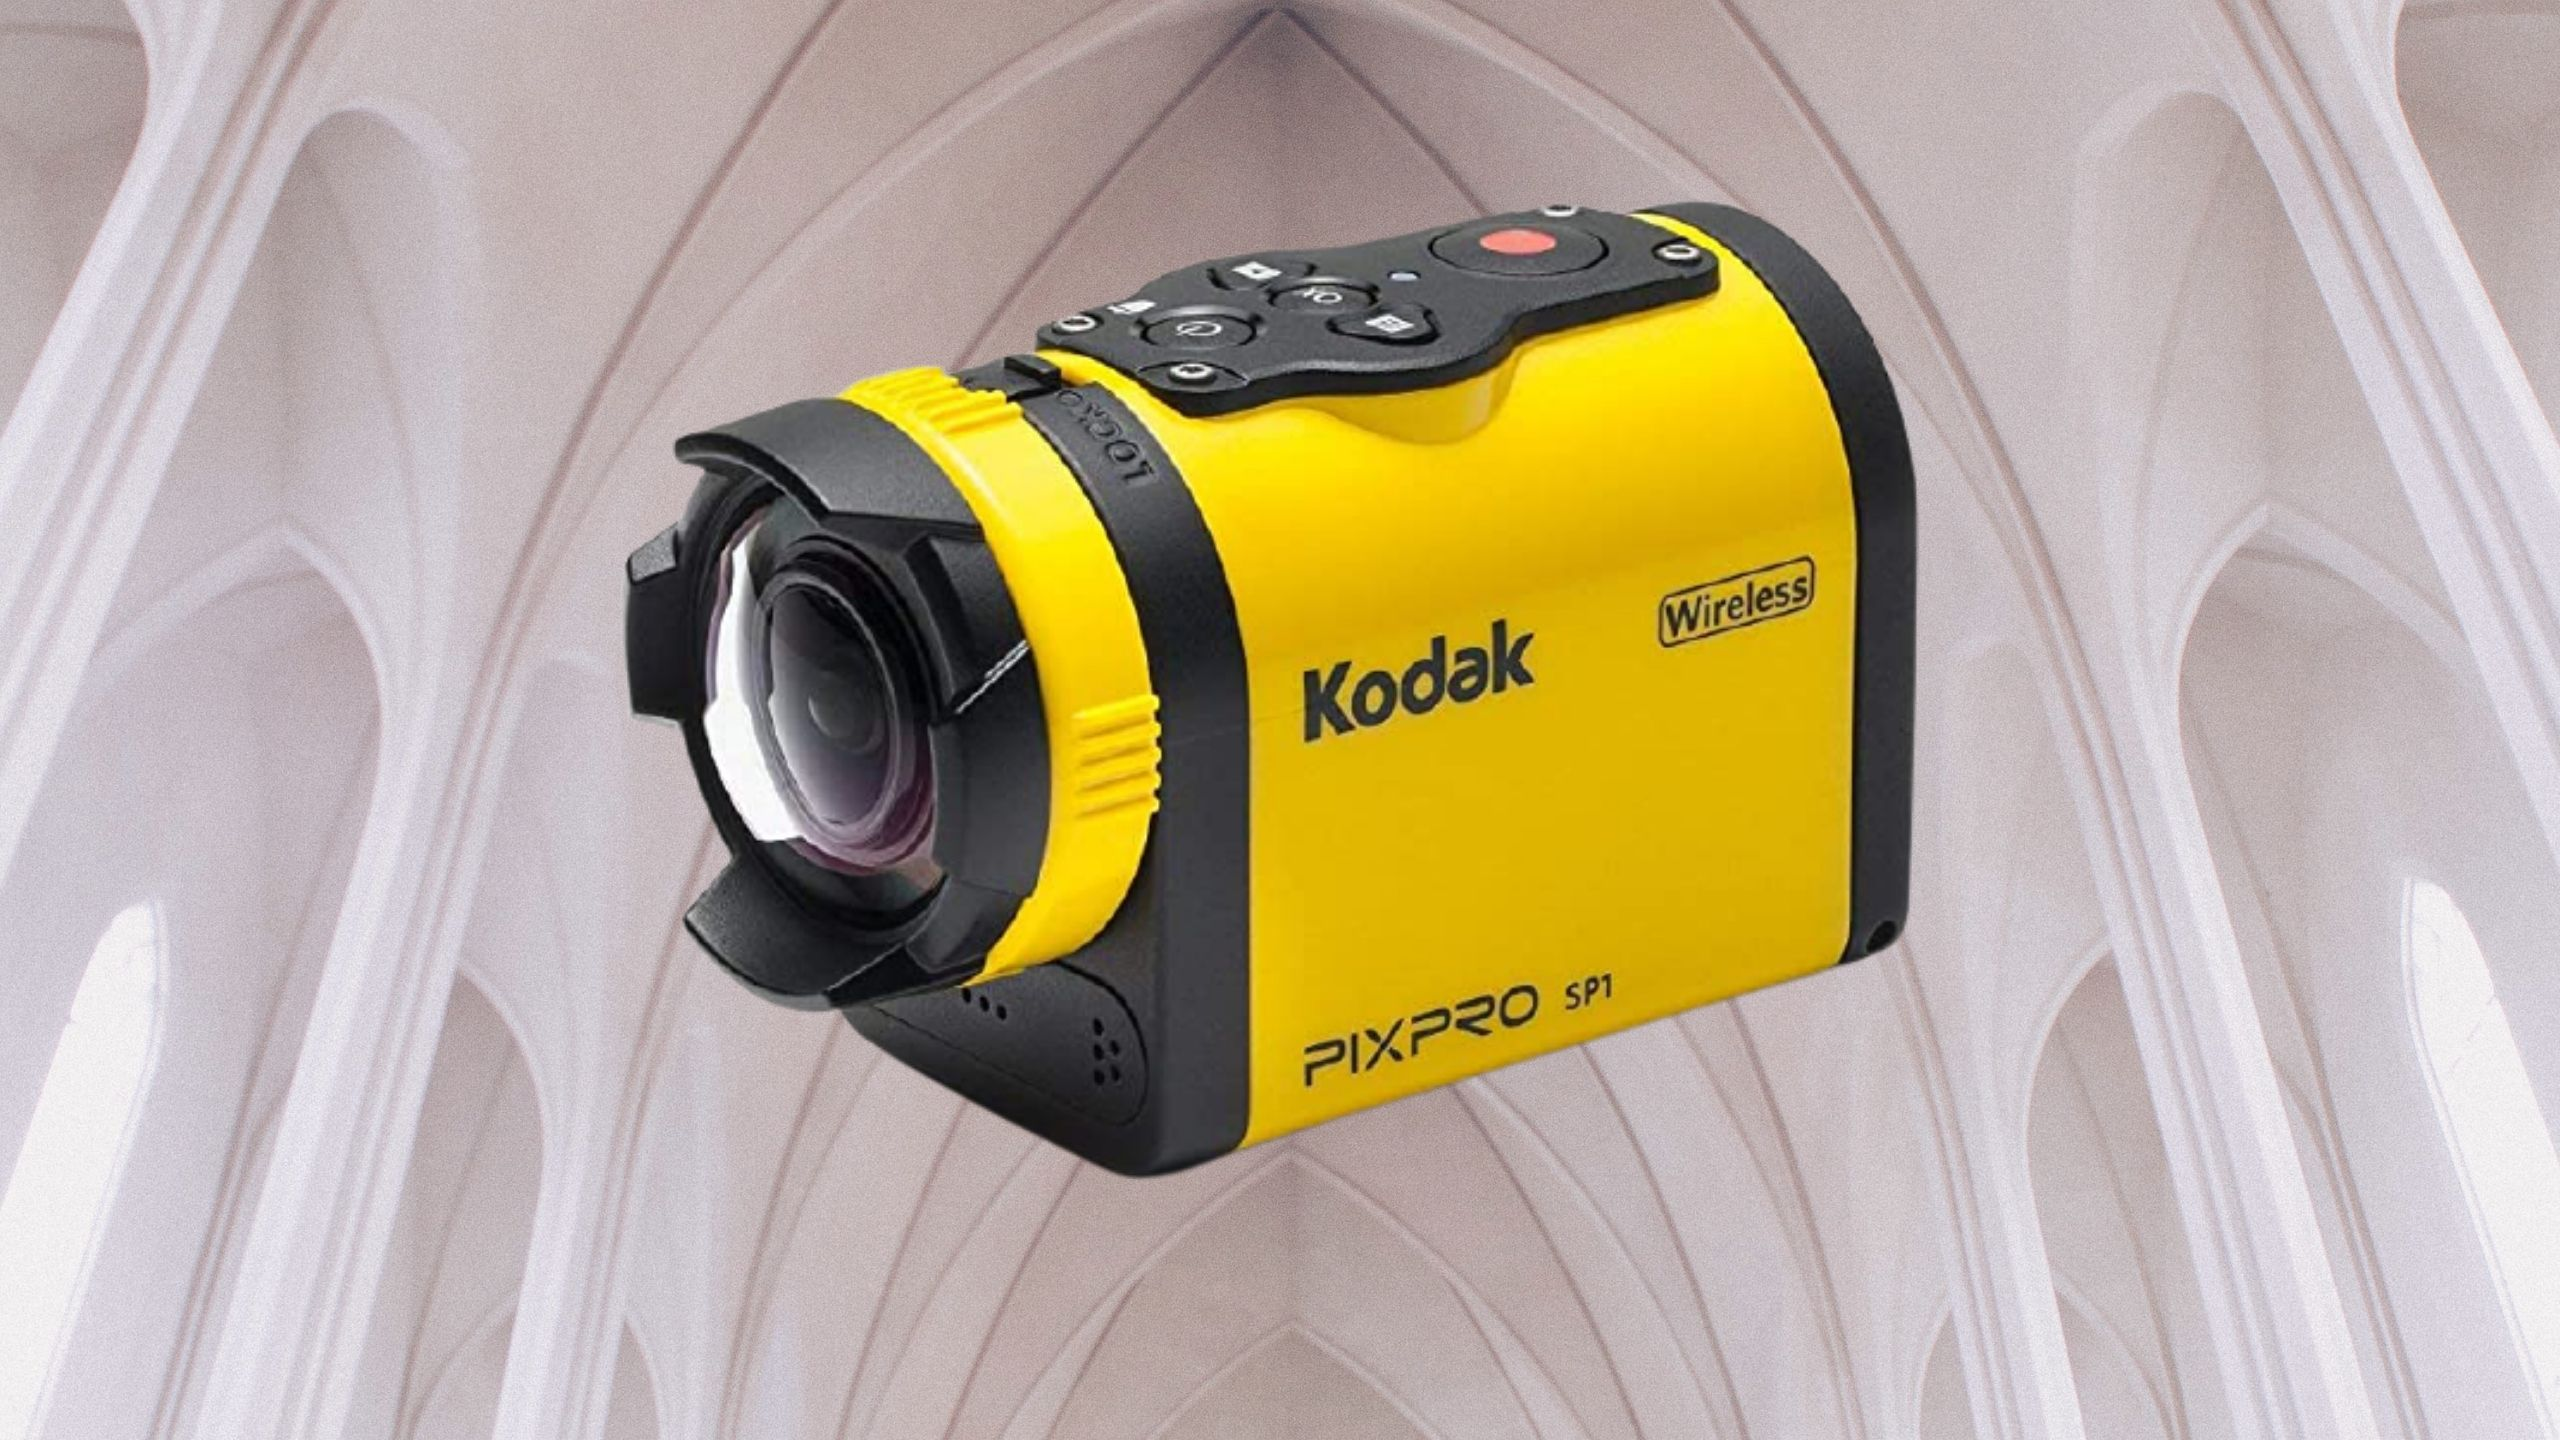 Kodak PIXPRO SP1 Action Cam